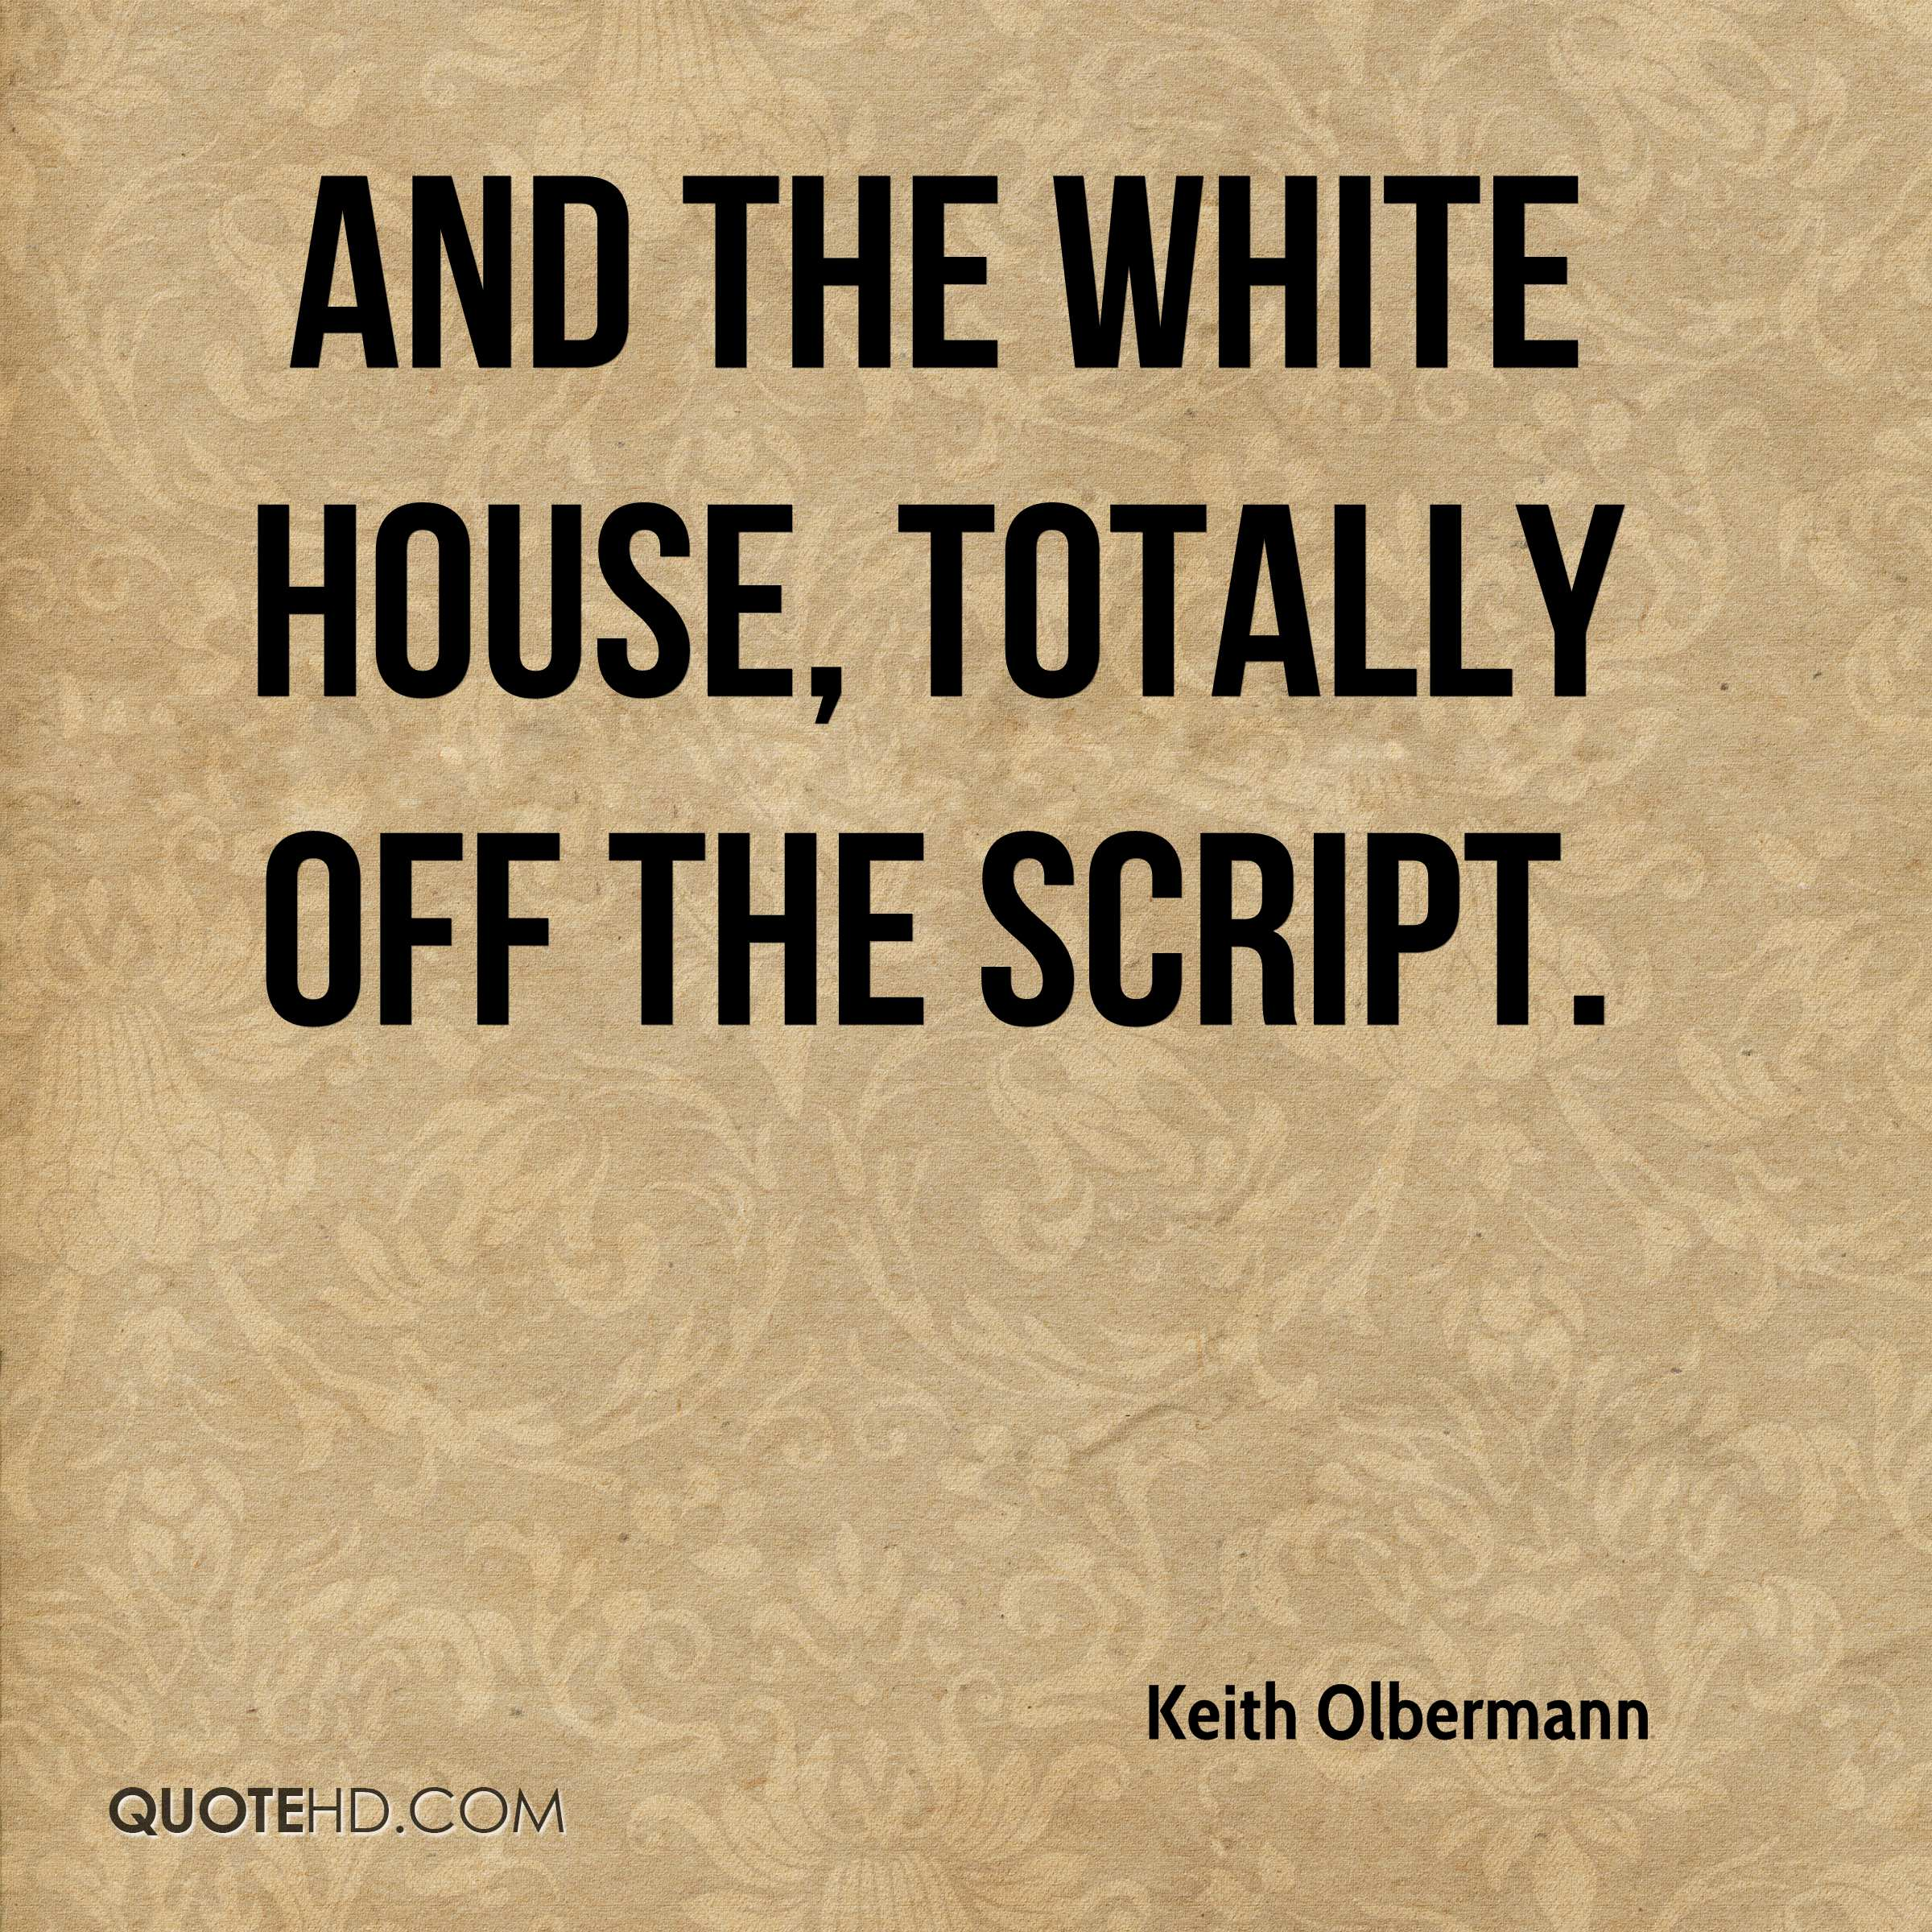 And the White House, totally off the script.